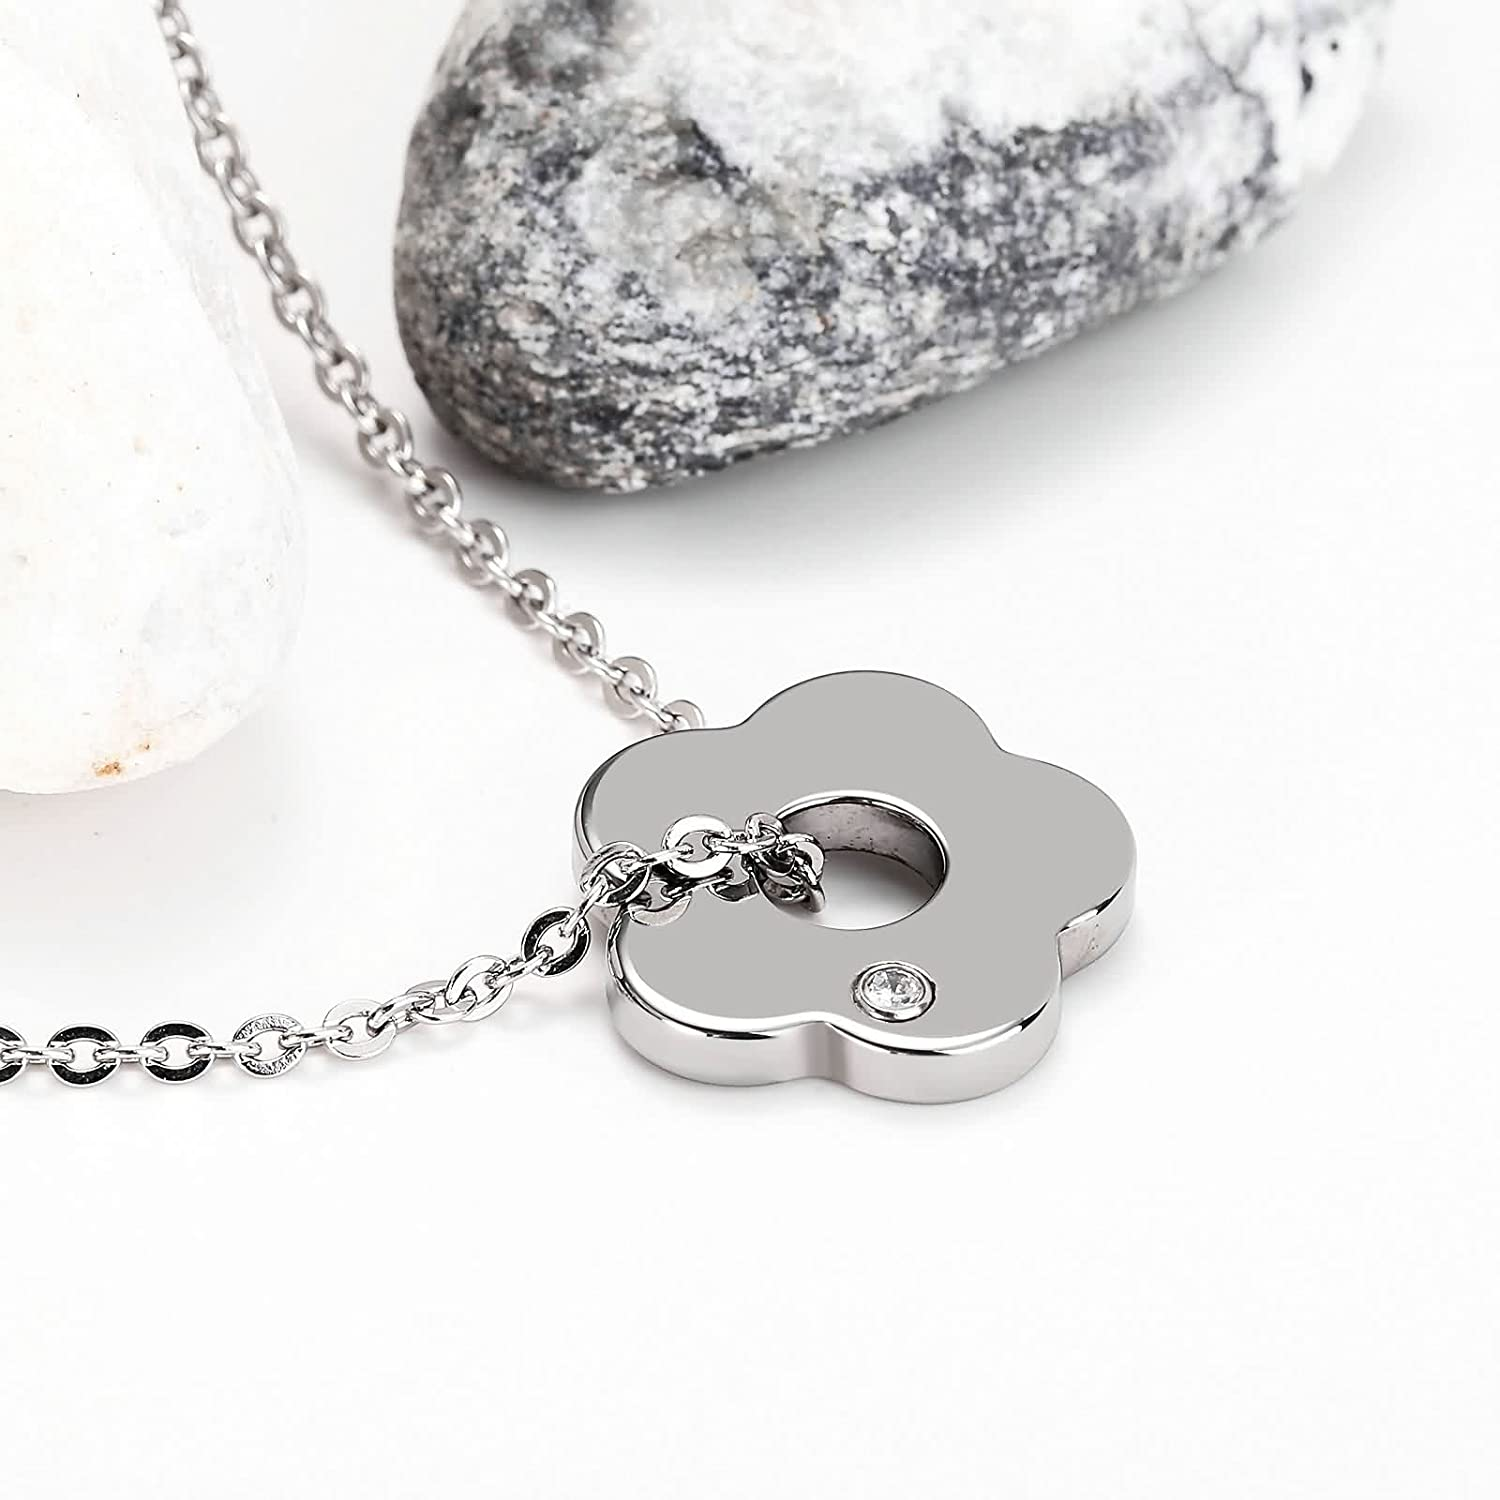 Aooaz Stainless Steel Necklace Women Lady Plum Pendant Necklace Silver Wedding for Wedding